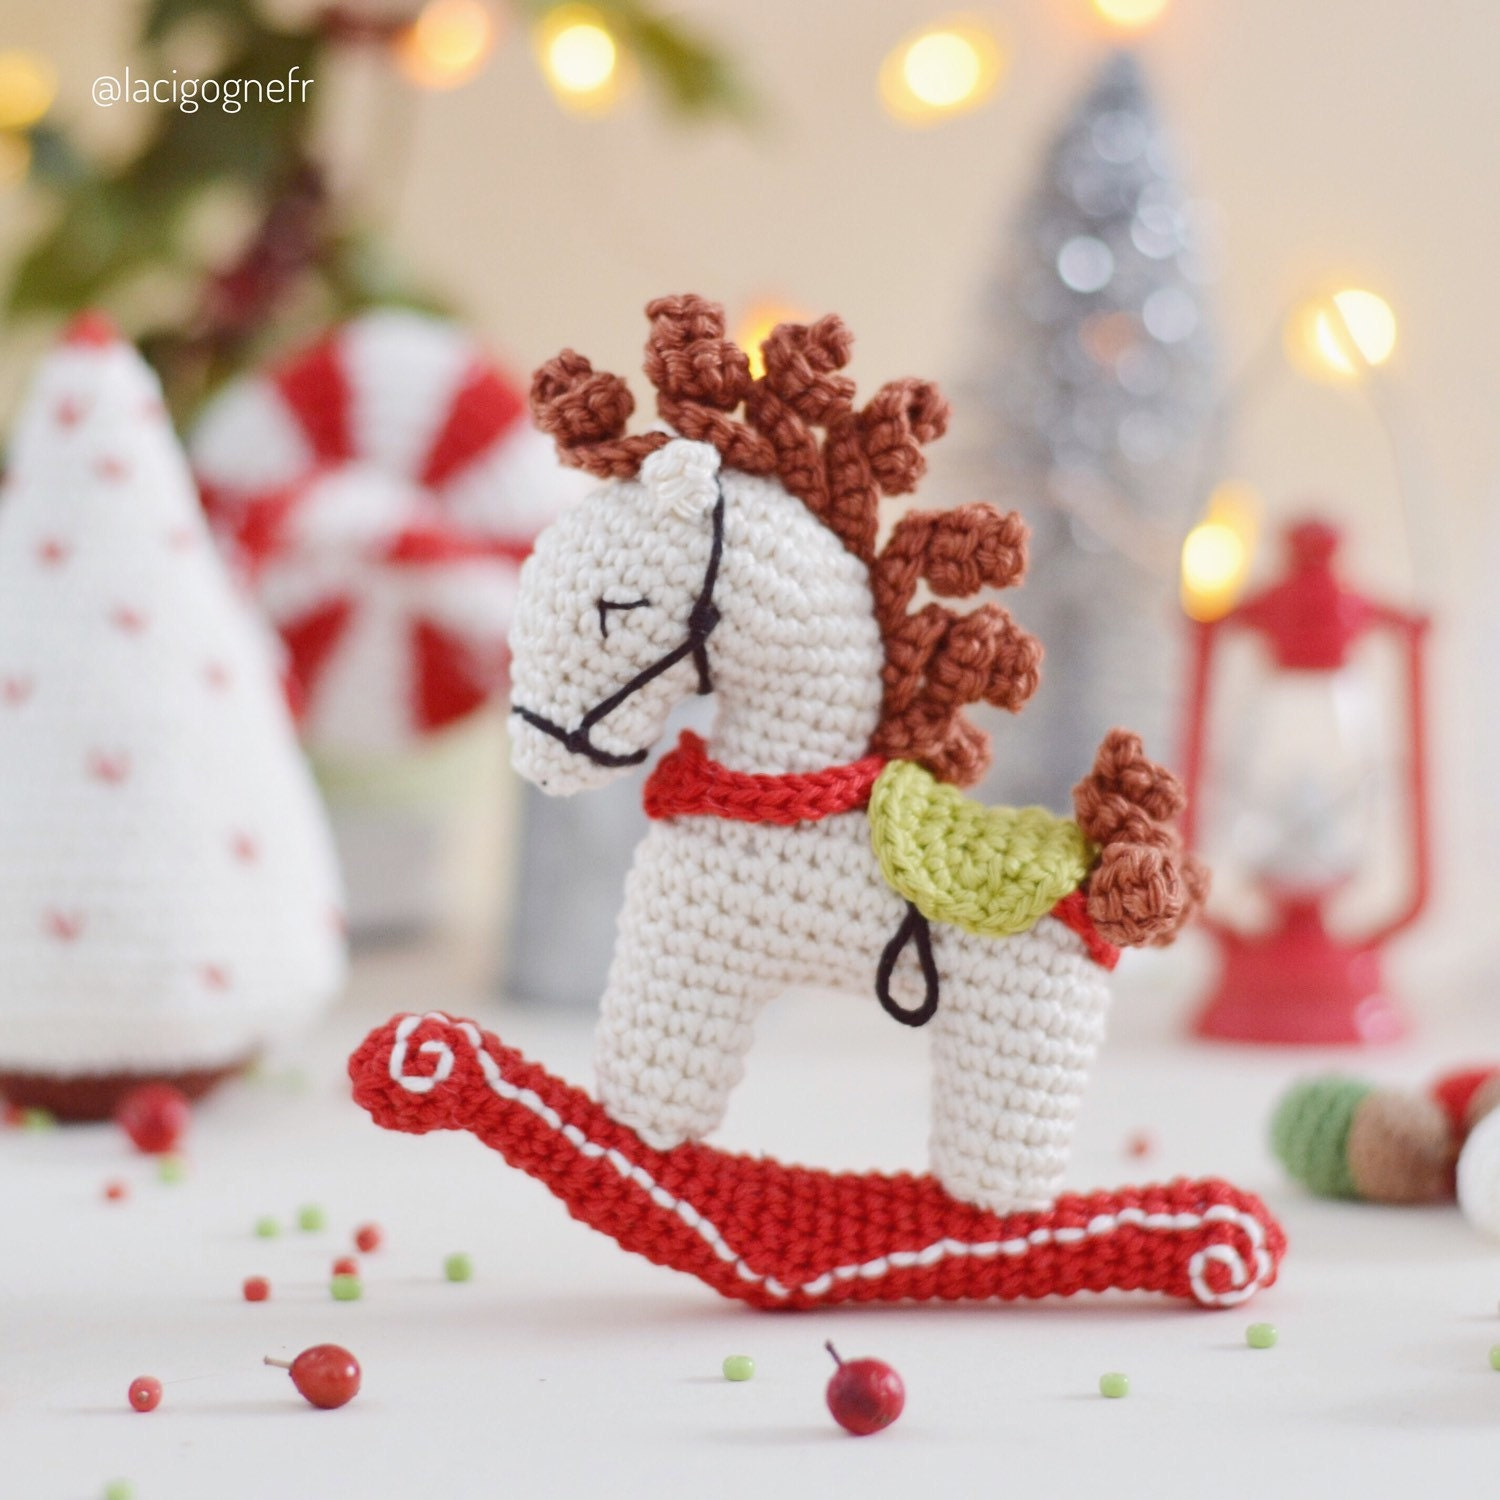 Christmas Rocking Horse Crochet Ornament And Holiday Decor Etsy